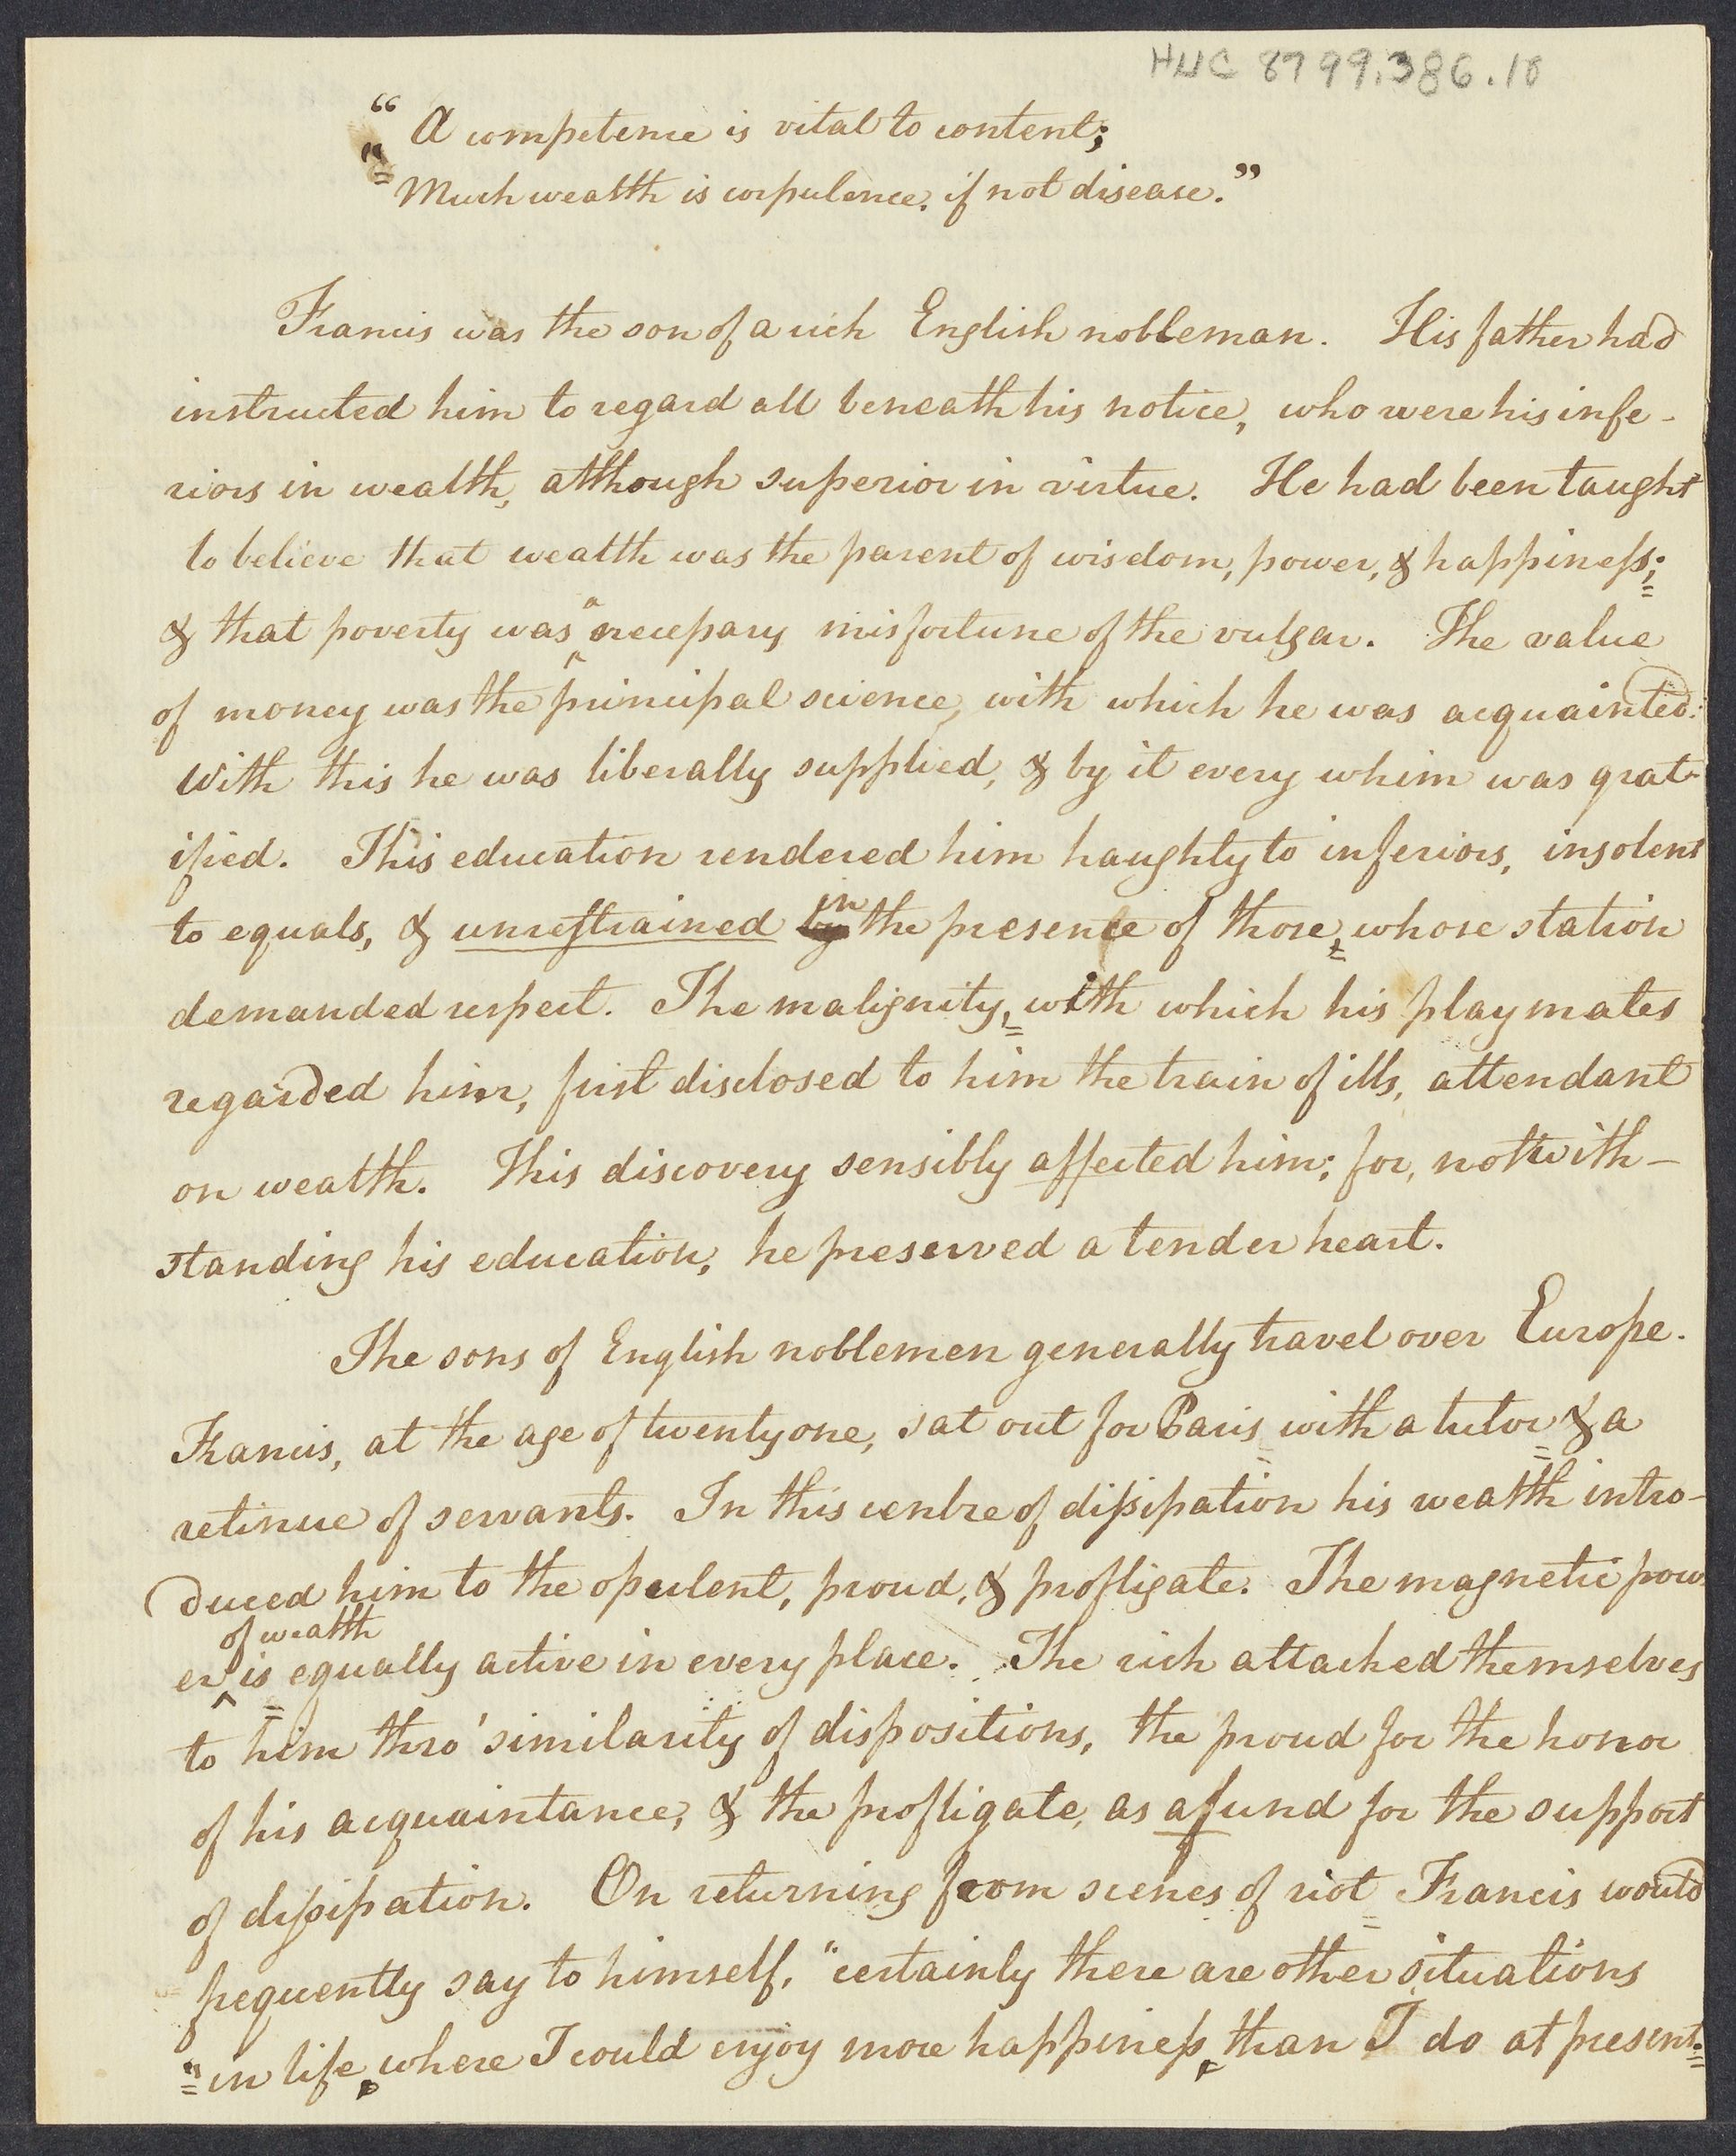 """A competence is vital to content; Much wealth is corpulence, if not disease"" (manuscript essay), 1799 March 30"